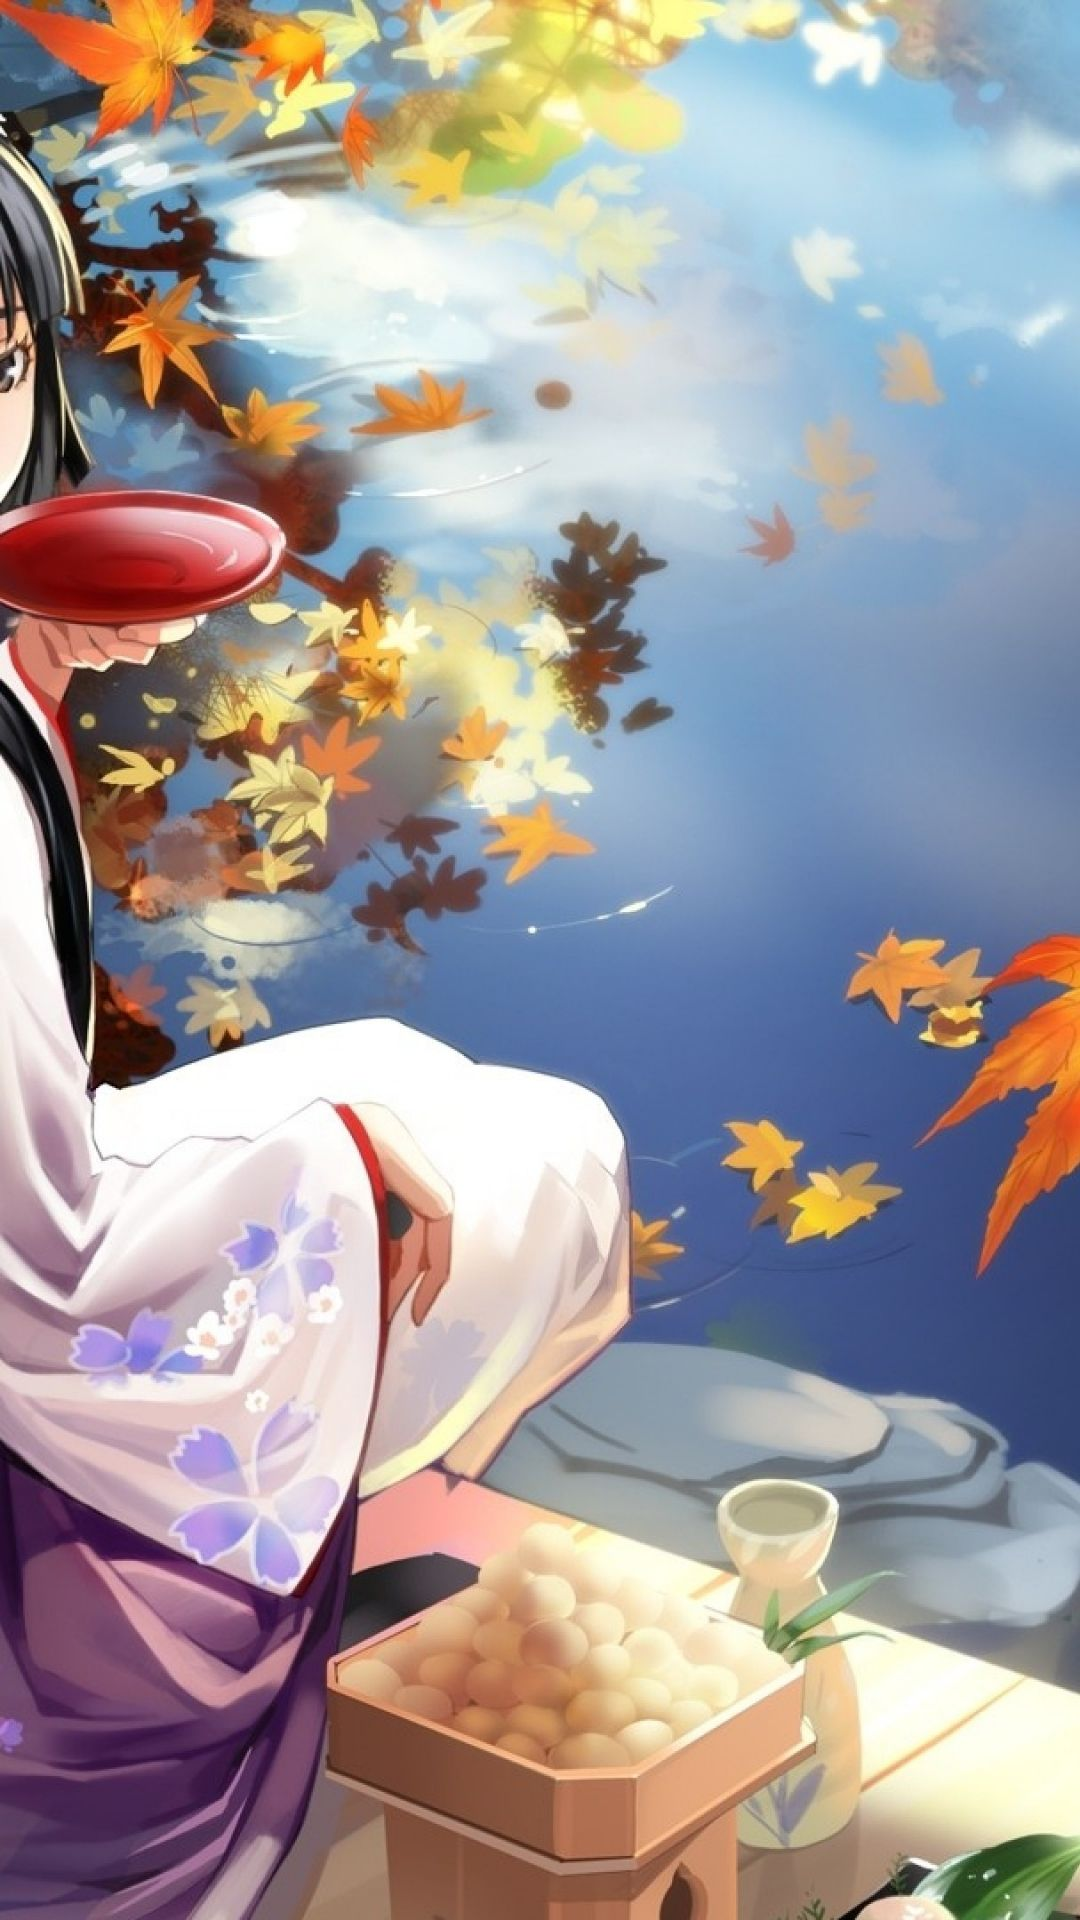 Samsung Anime Wallpapers Wallpaper Cave